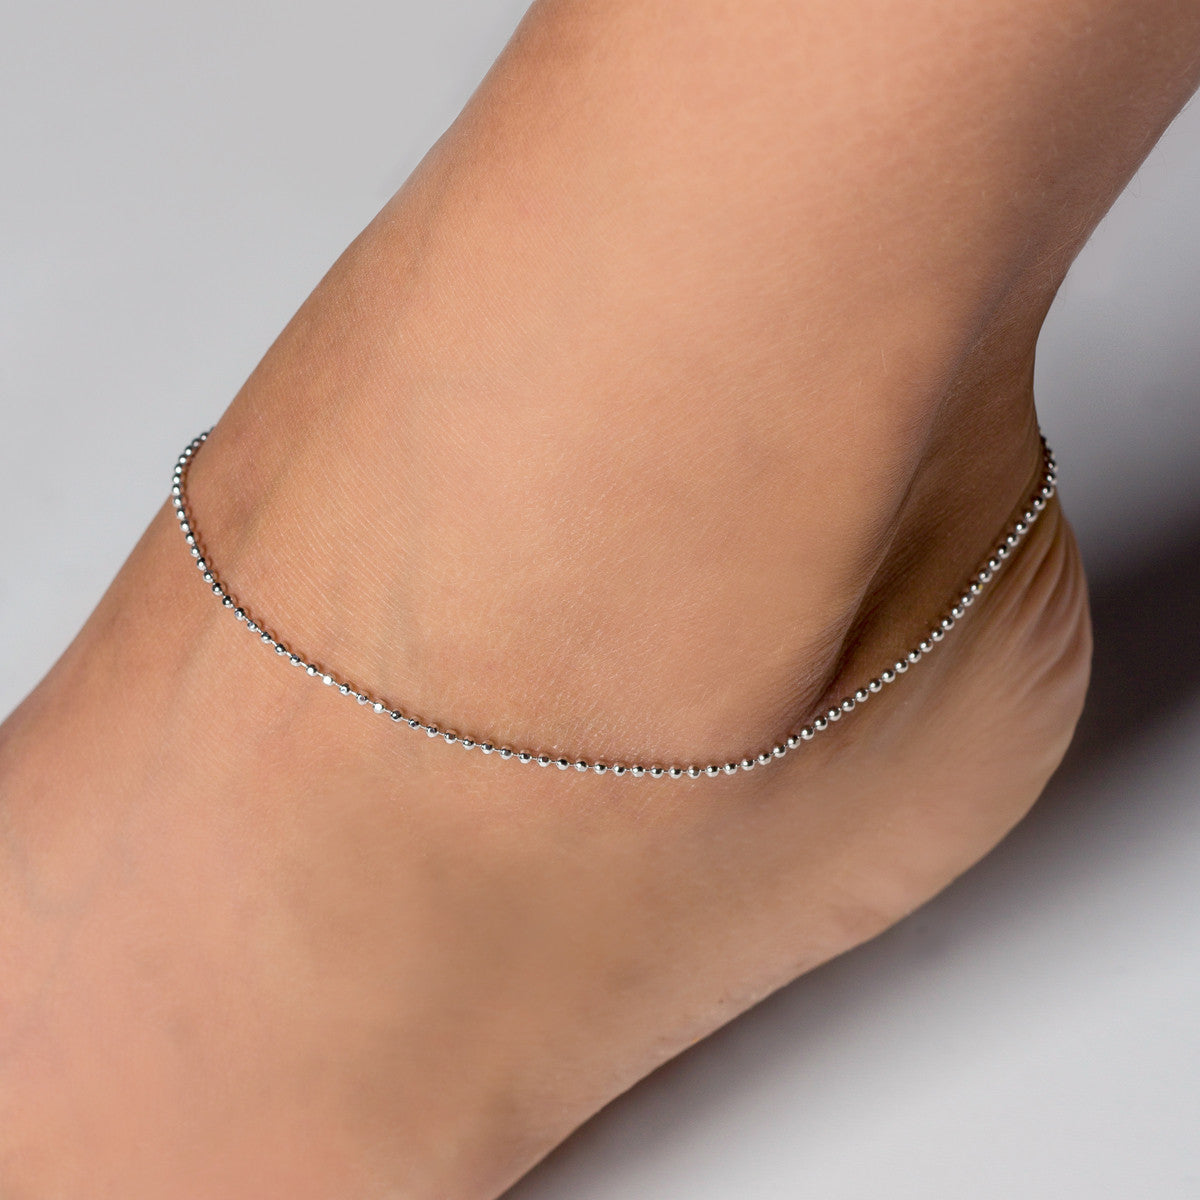 from sexy leg real bracelet anklet female foot ankle hand bracelets plated women chain gifts jewelry fatima new hamsa fashion exquisite for product silver anklets